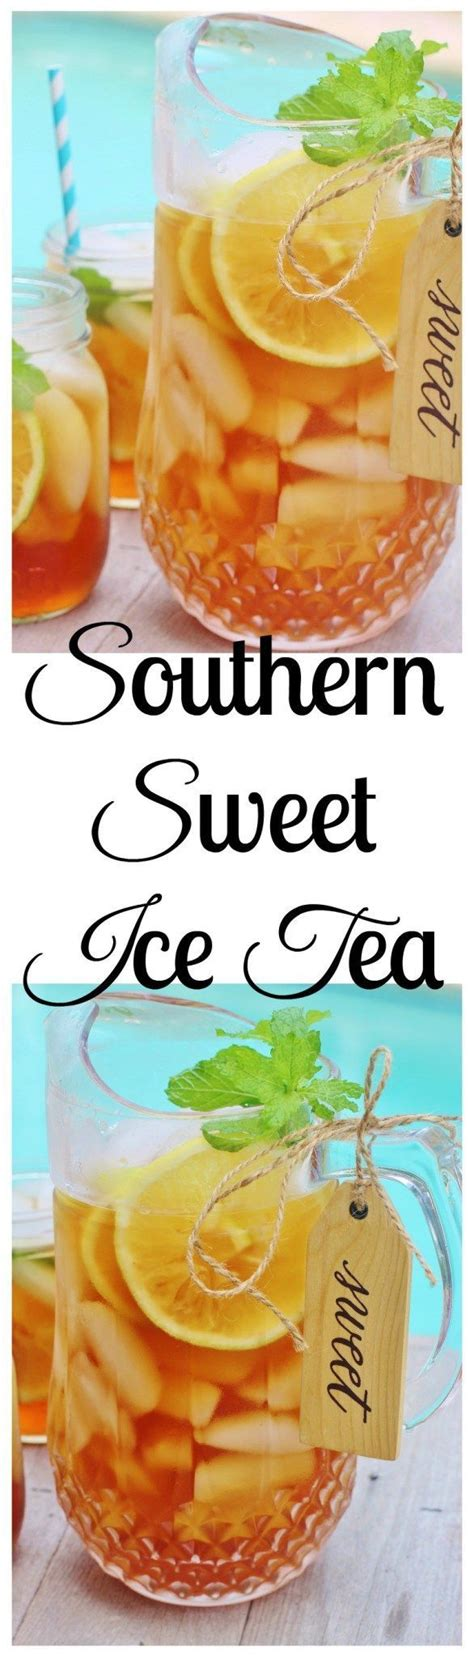 southern comfort sweet 25 best ideas about iced tea pitcher on pinterest iced